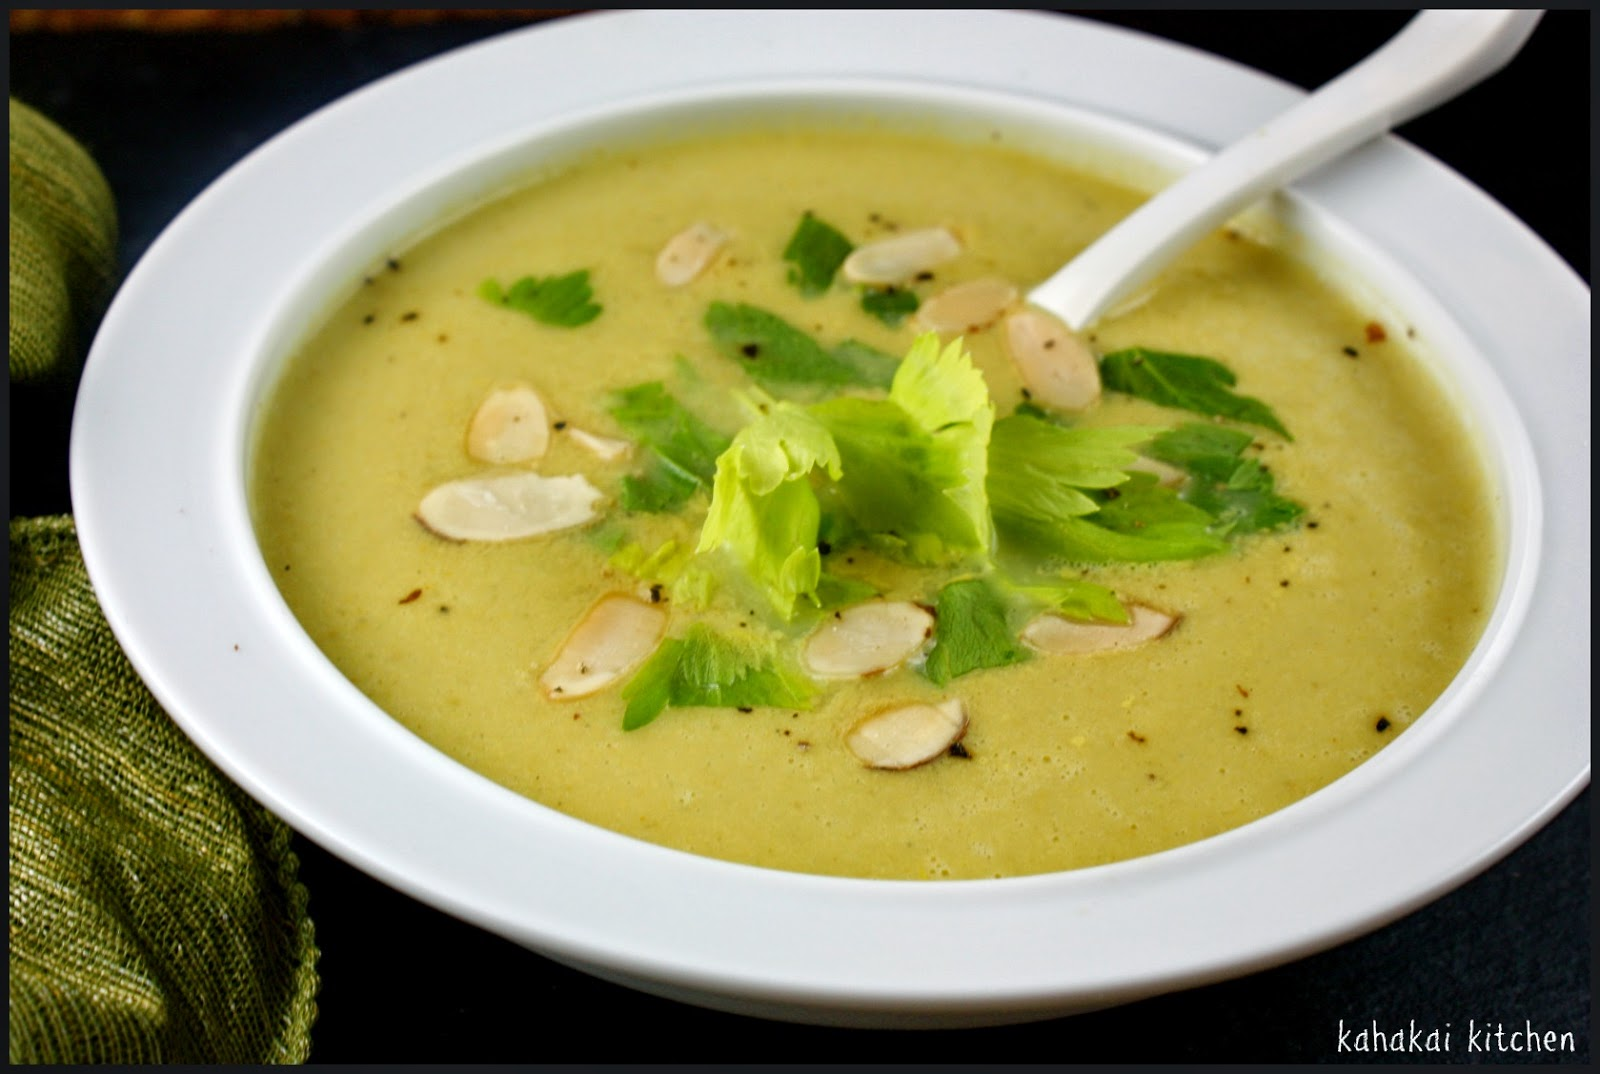 ... Cream of Celery Soup, Unique and Flavorful for Souper (Soup